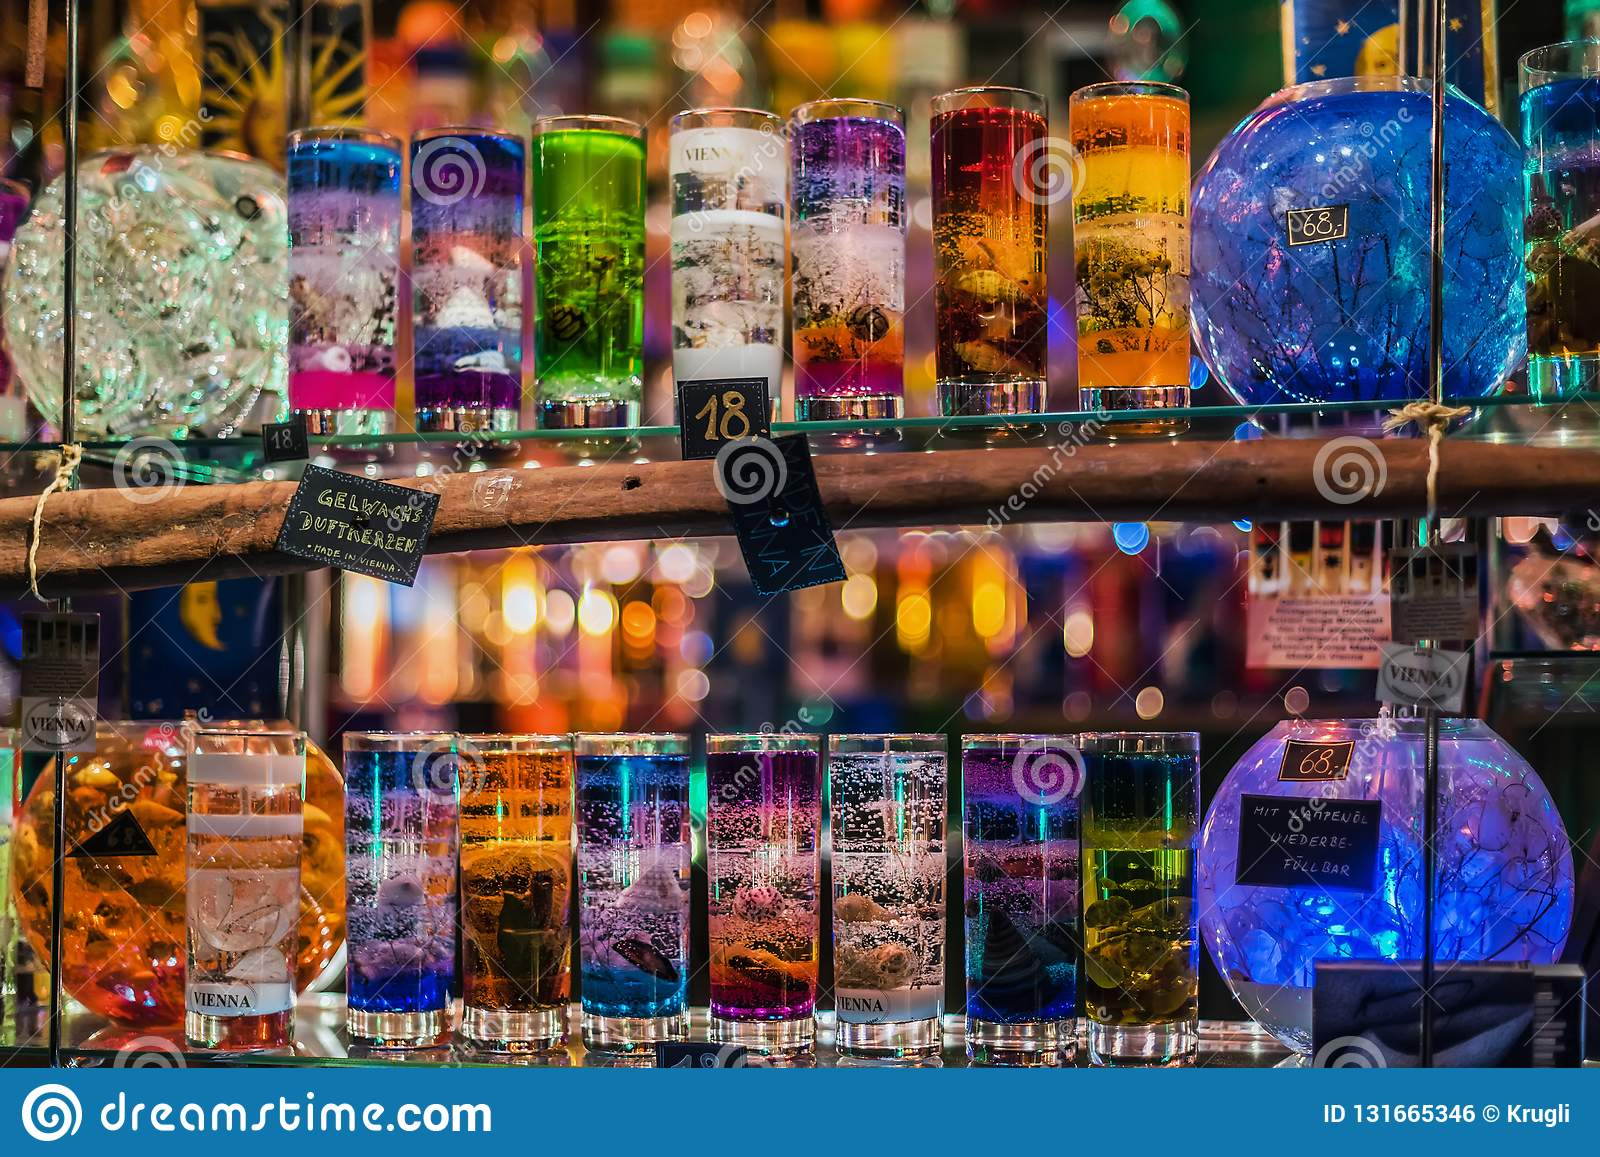 Natale Jelly Glass Candle Kiosk